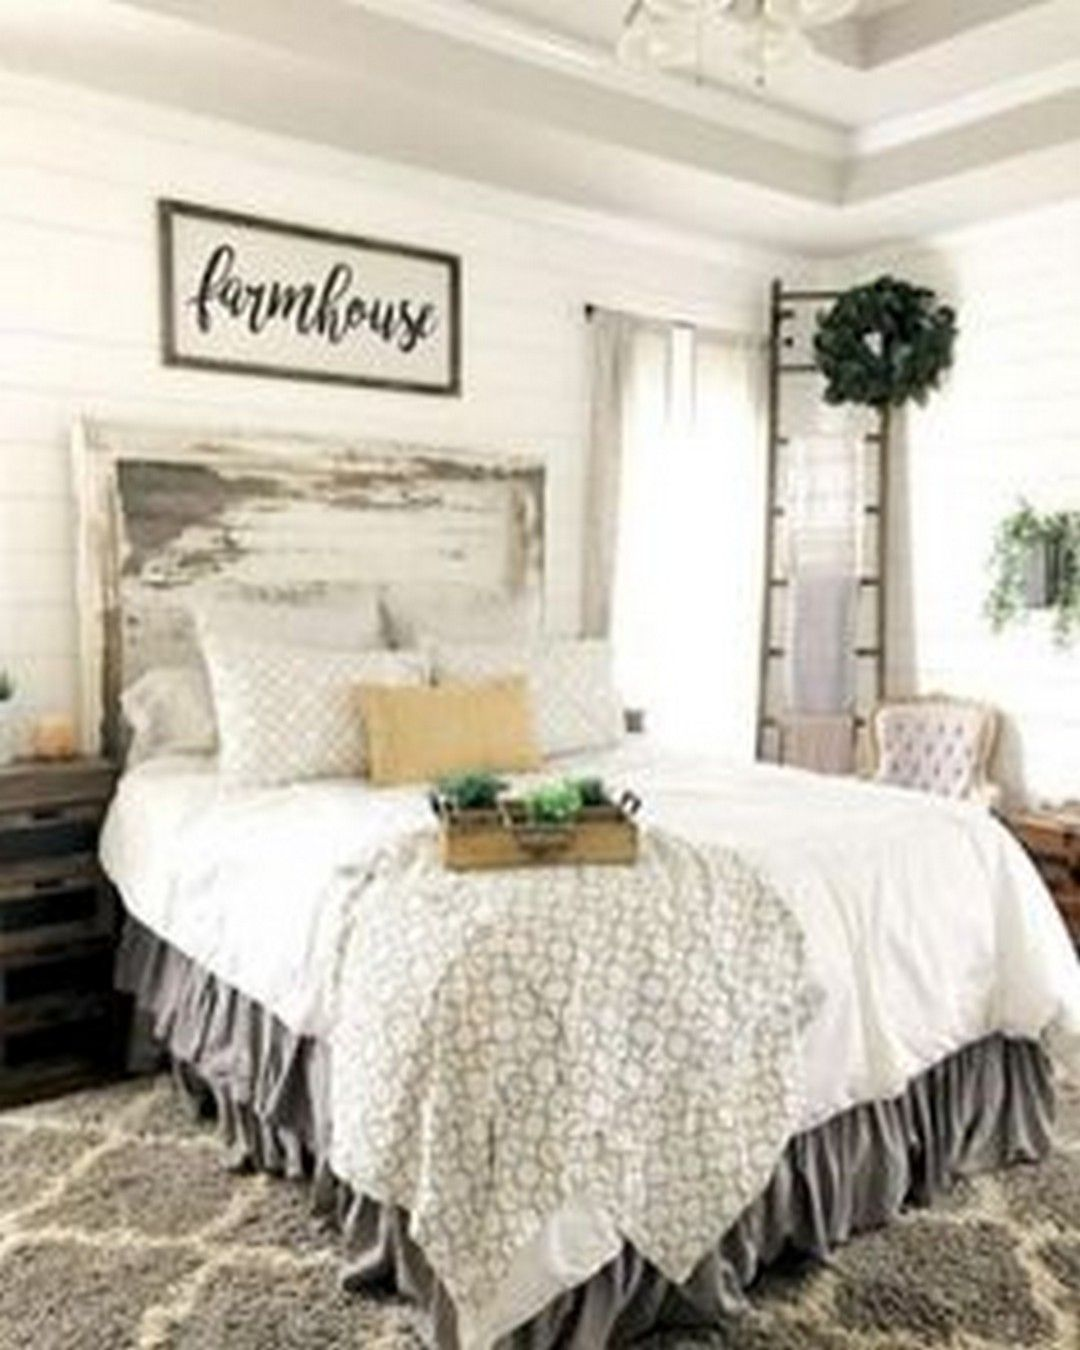 How to maximize bedding appearance by applying farmhouse master bedroom https www